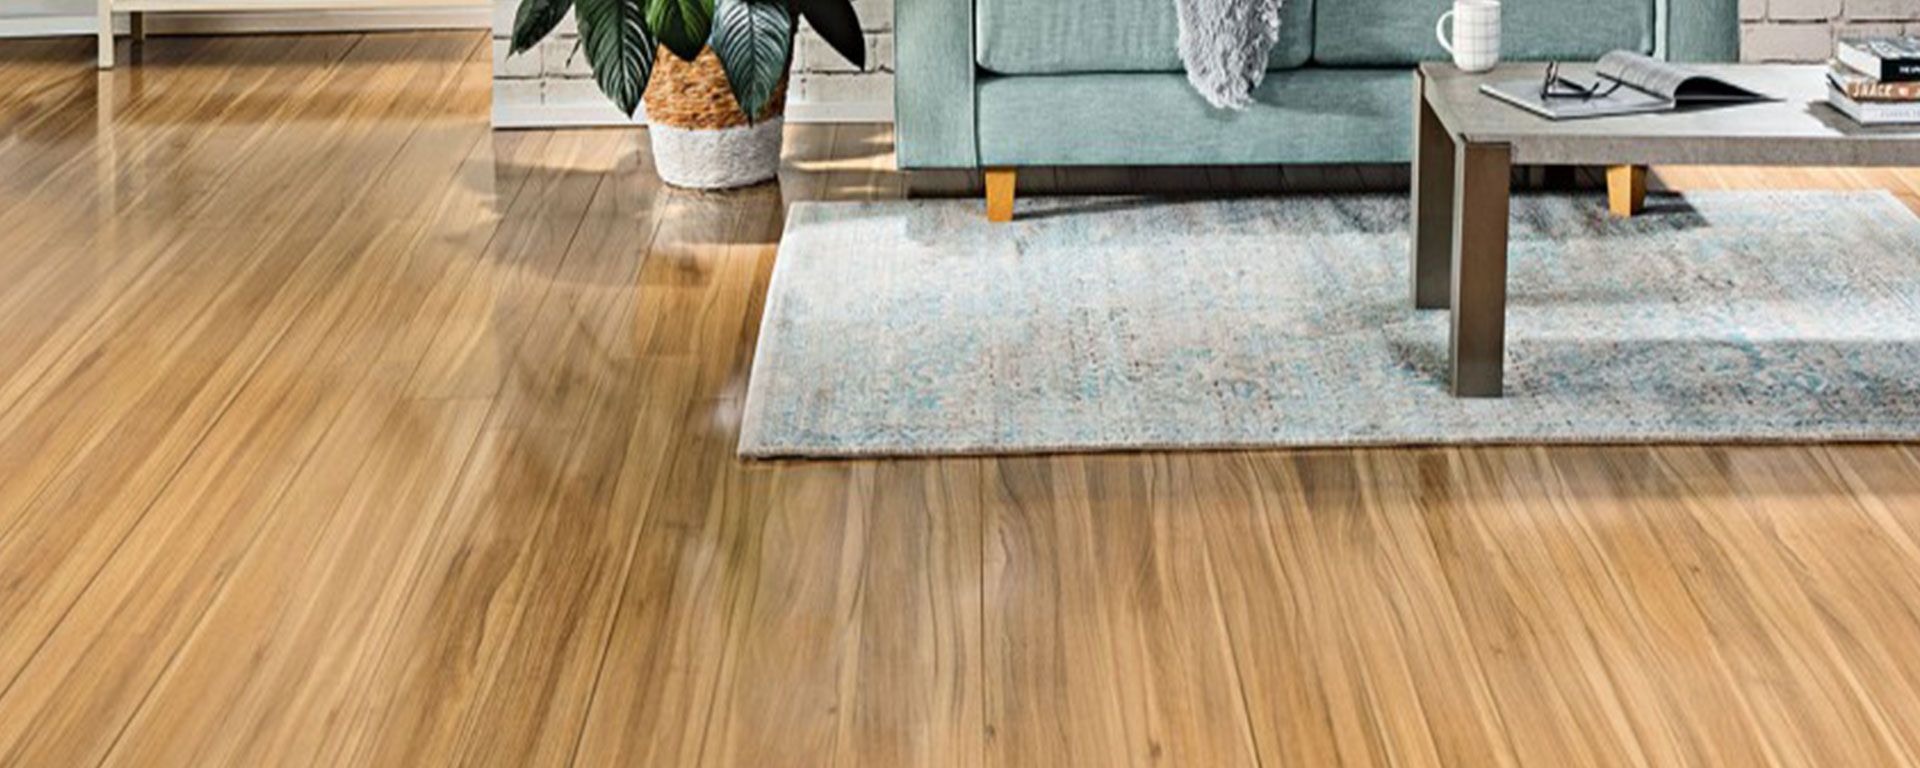 decorator trends laminate timber flooring harvey norman australia. Black Bedroom Furniture Sets. Home Design Ideas